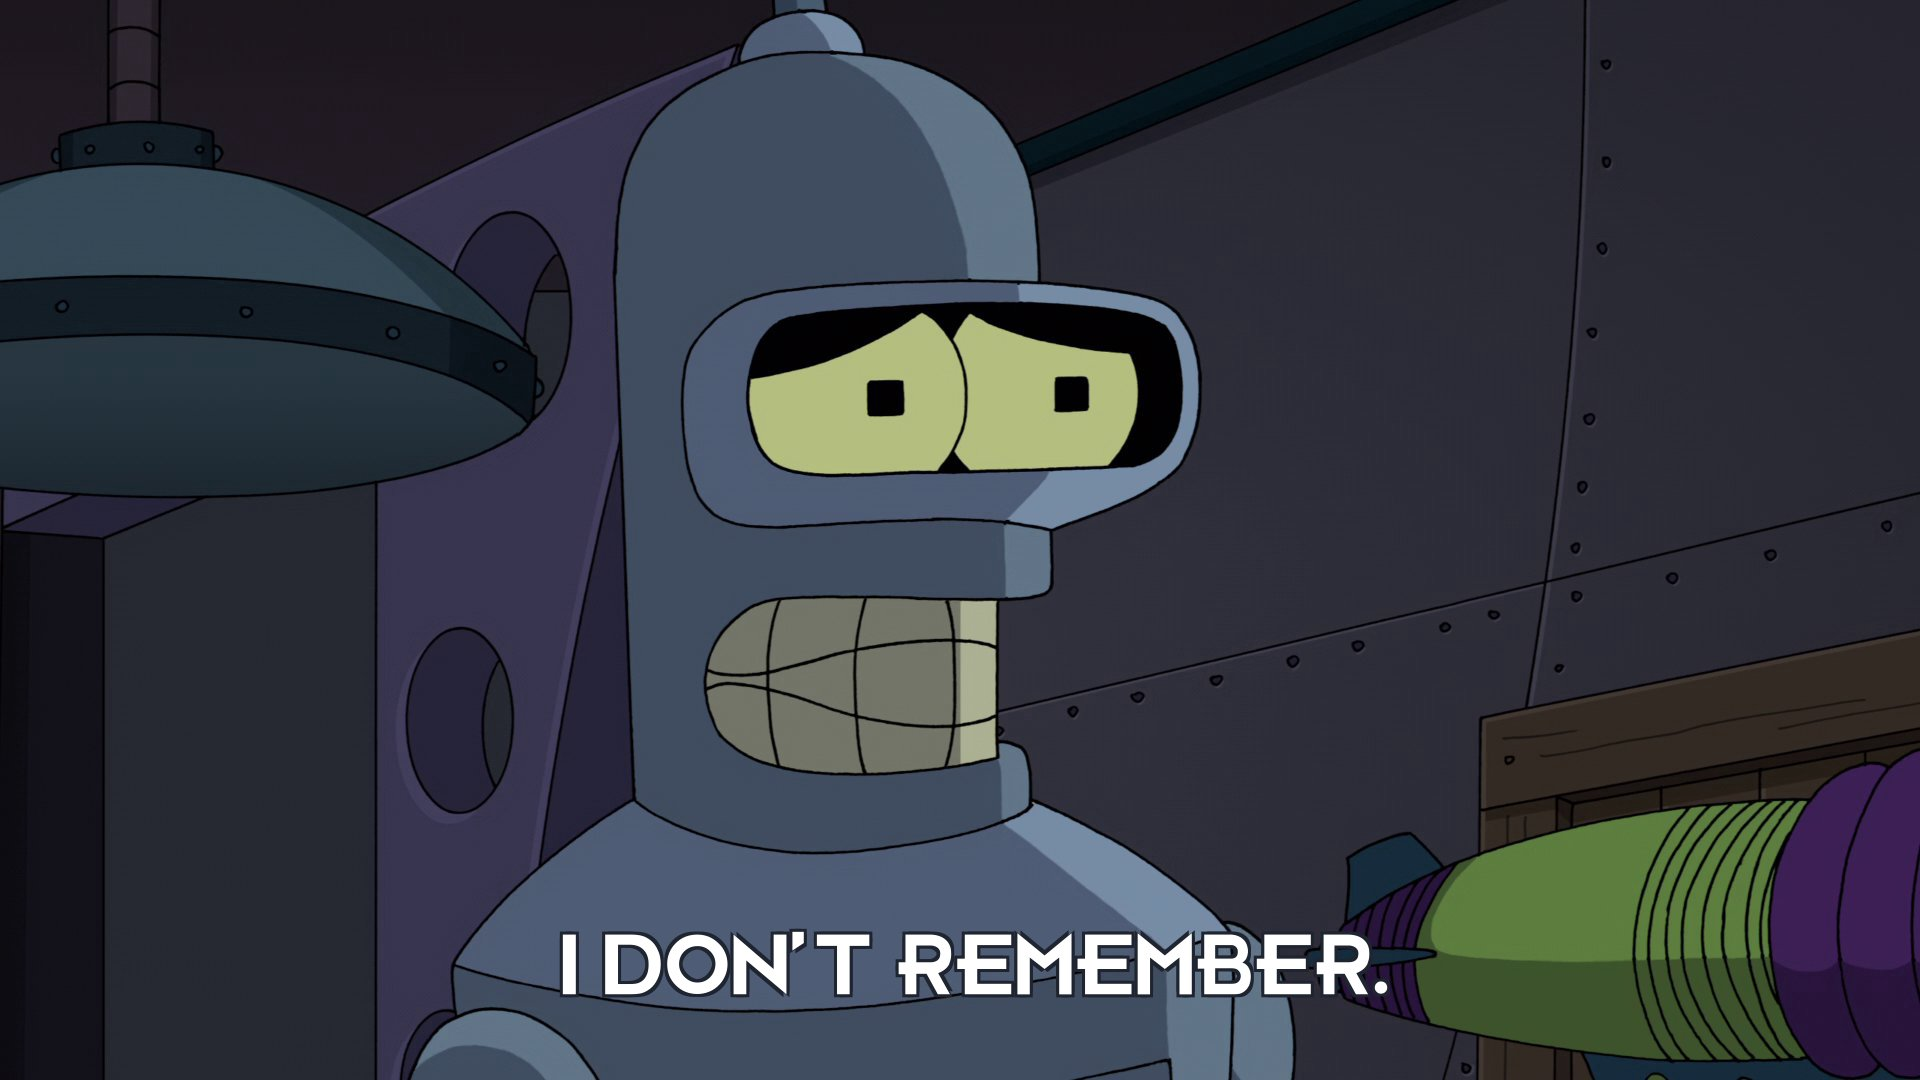 Bender Bending Rodriguez: I don't remember.